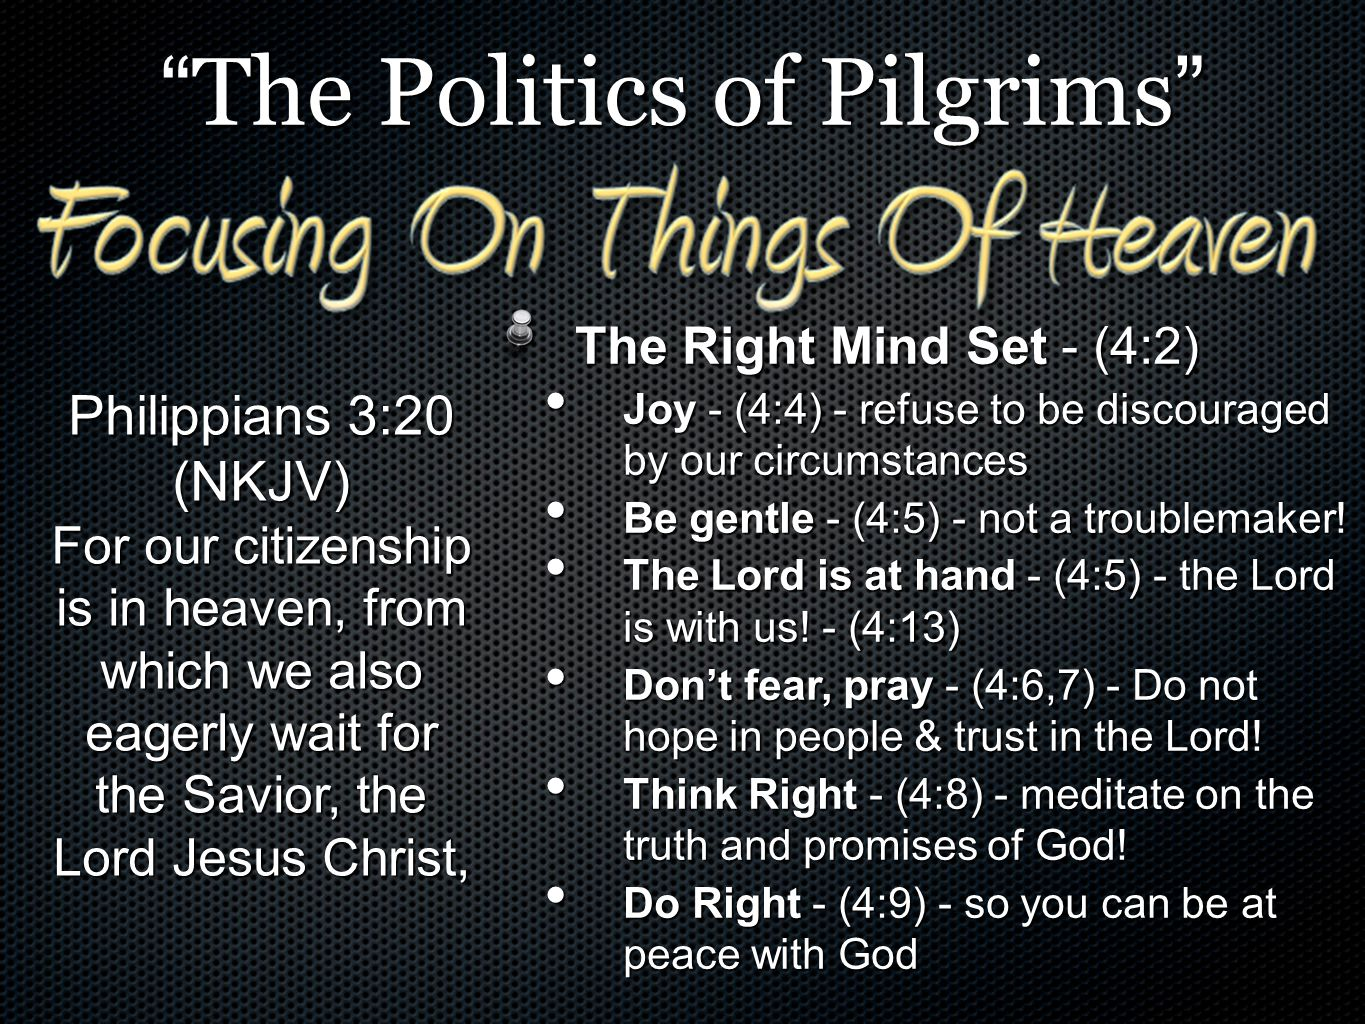 The Politics of Pilgrims The Right Mind Set - (4:2) Joy - (4:4) - refuse to be discouraged by our circumstances Be gentle - (4:5) - not a troublemaker.